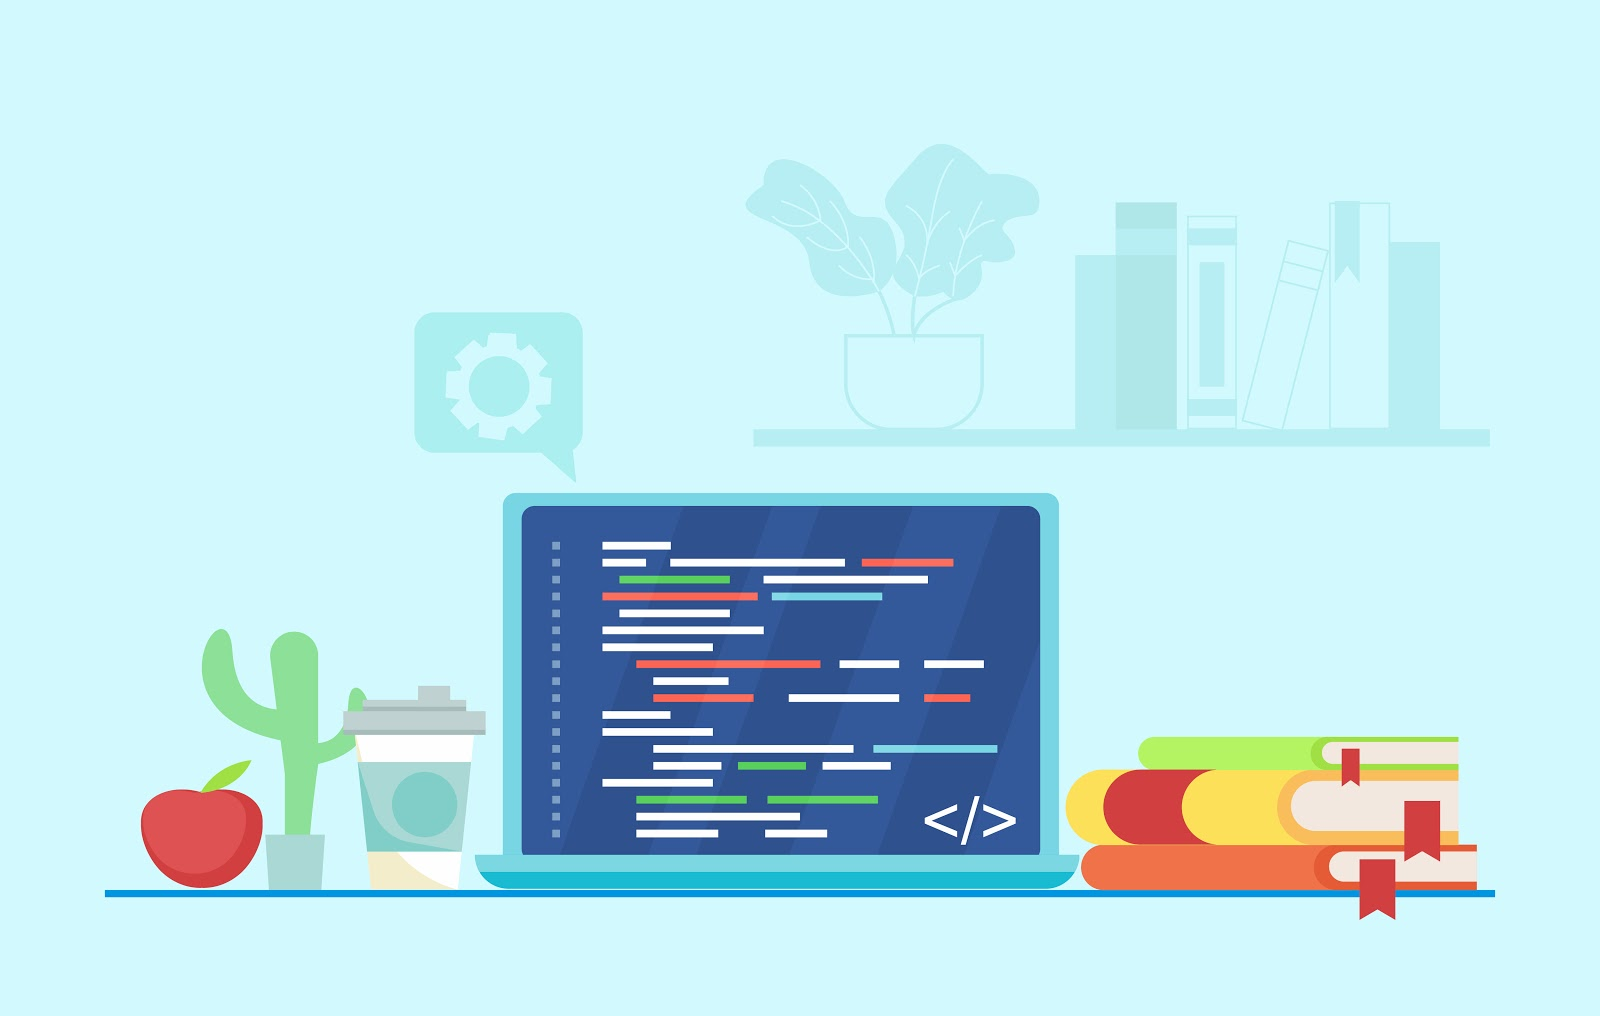 Expanding Your Skills With Web Development